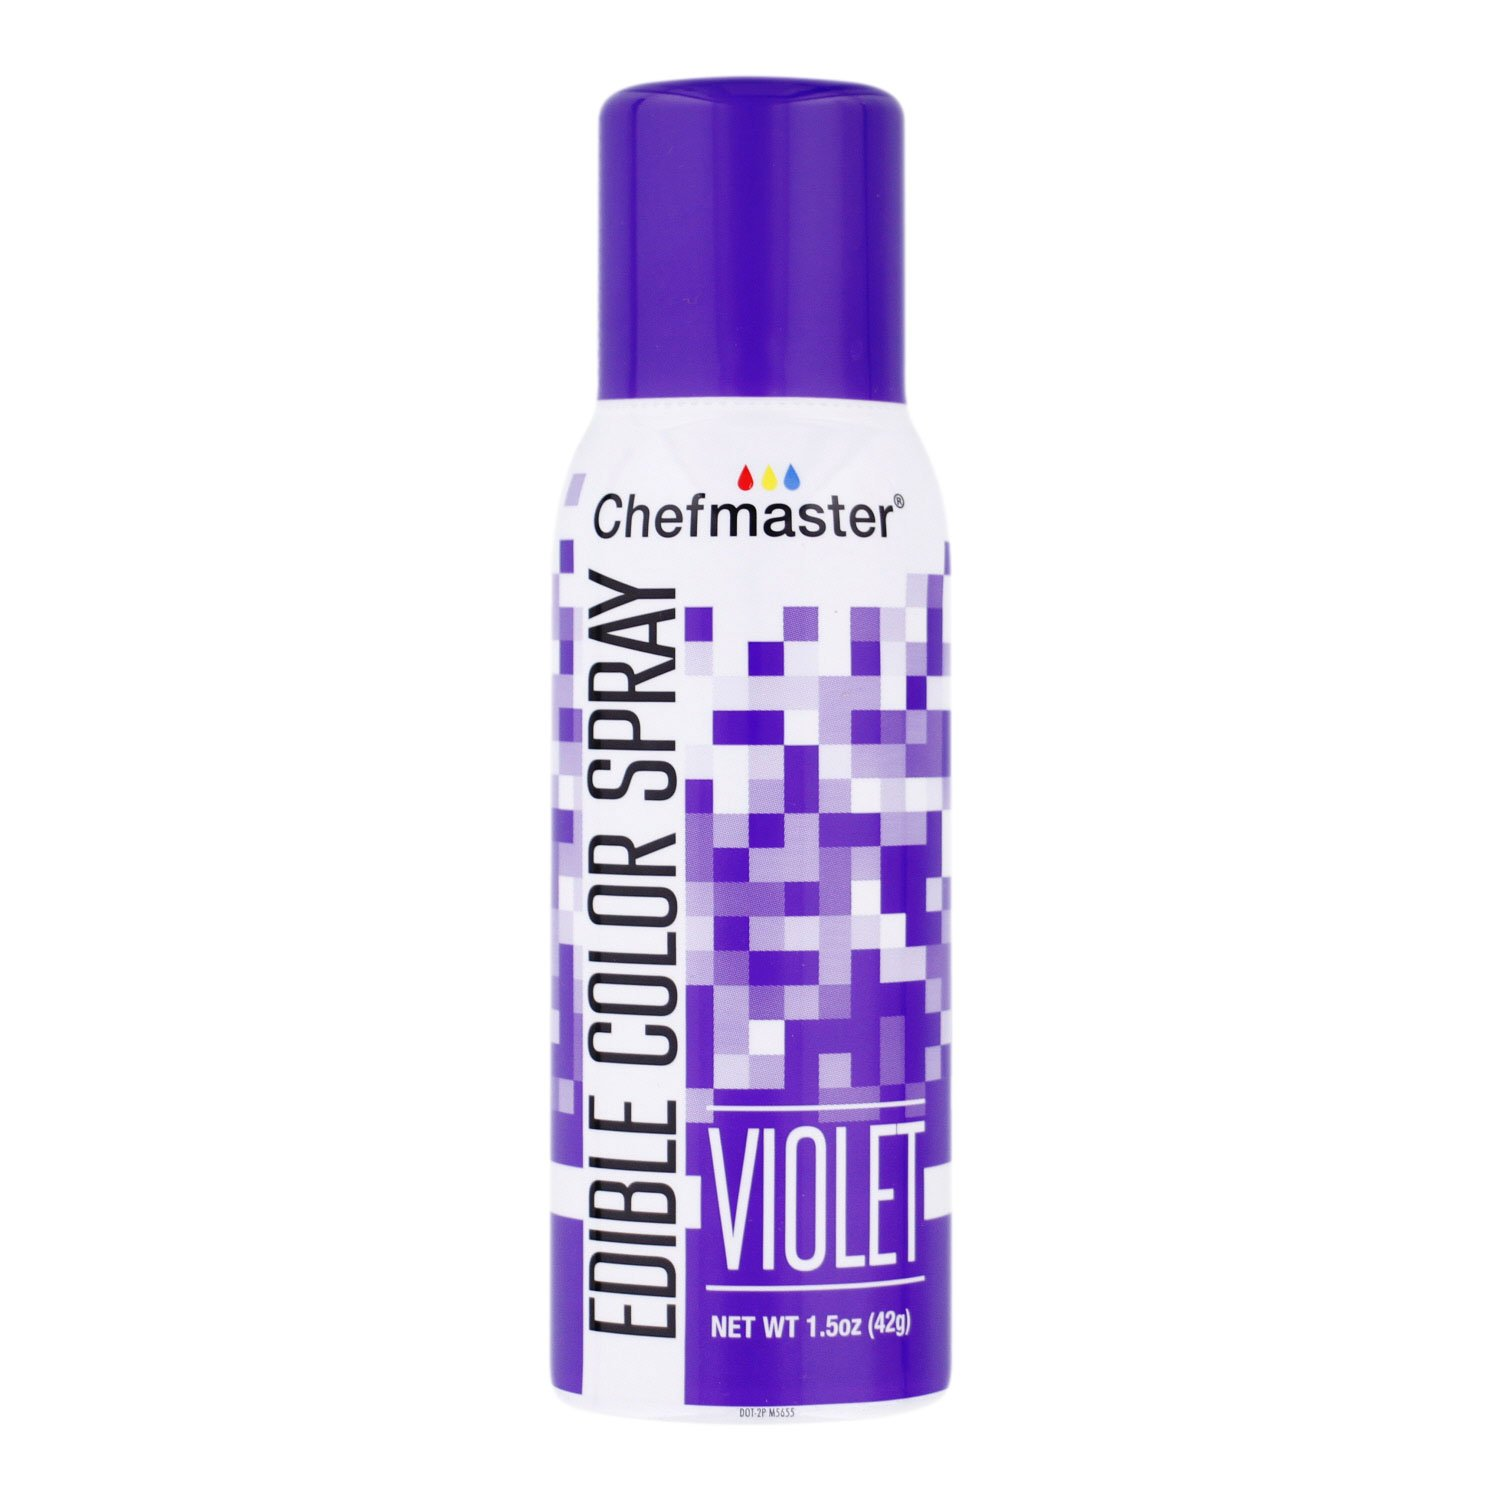 Chefmaster Edible Spray Cake Decorating Color 1.5 Ounce Can - Violet by Chefmaster